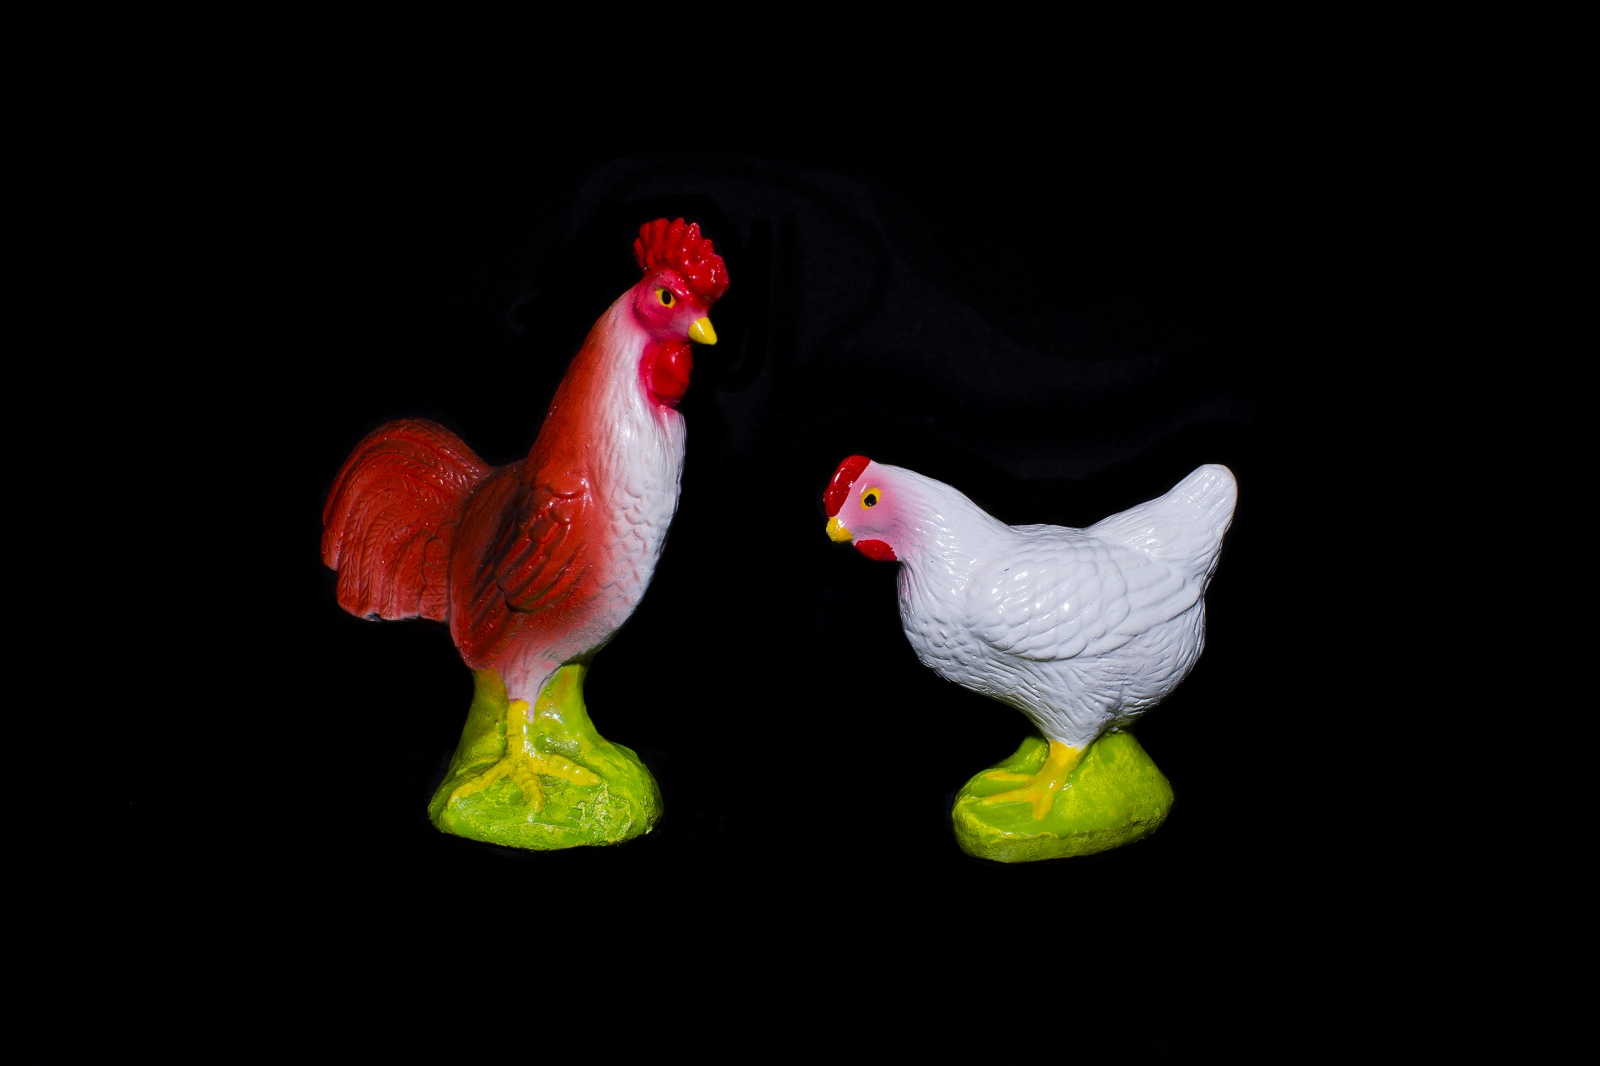 The Rooster and Hen. These animals represent the search for a partner. If you are given a rooster then you will get a boyfriend/groom and if it is an hen you will get a girlfriend/bride. People say that it will only work if the animal is received as a gift and shouldn't be bought by the person looking for a partner.